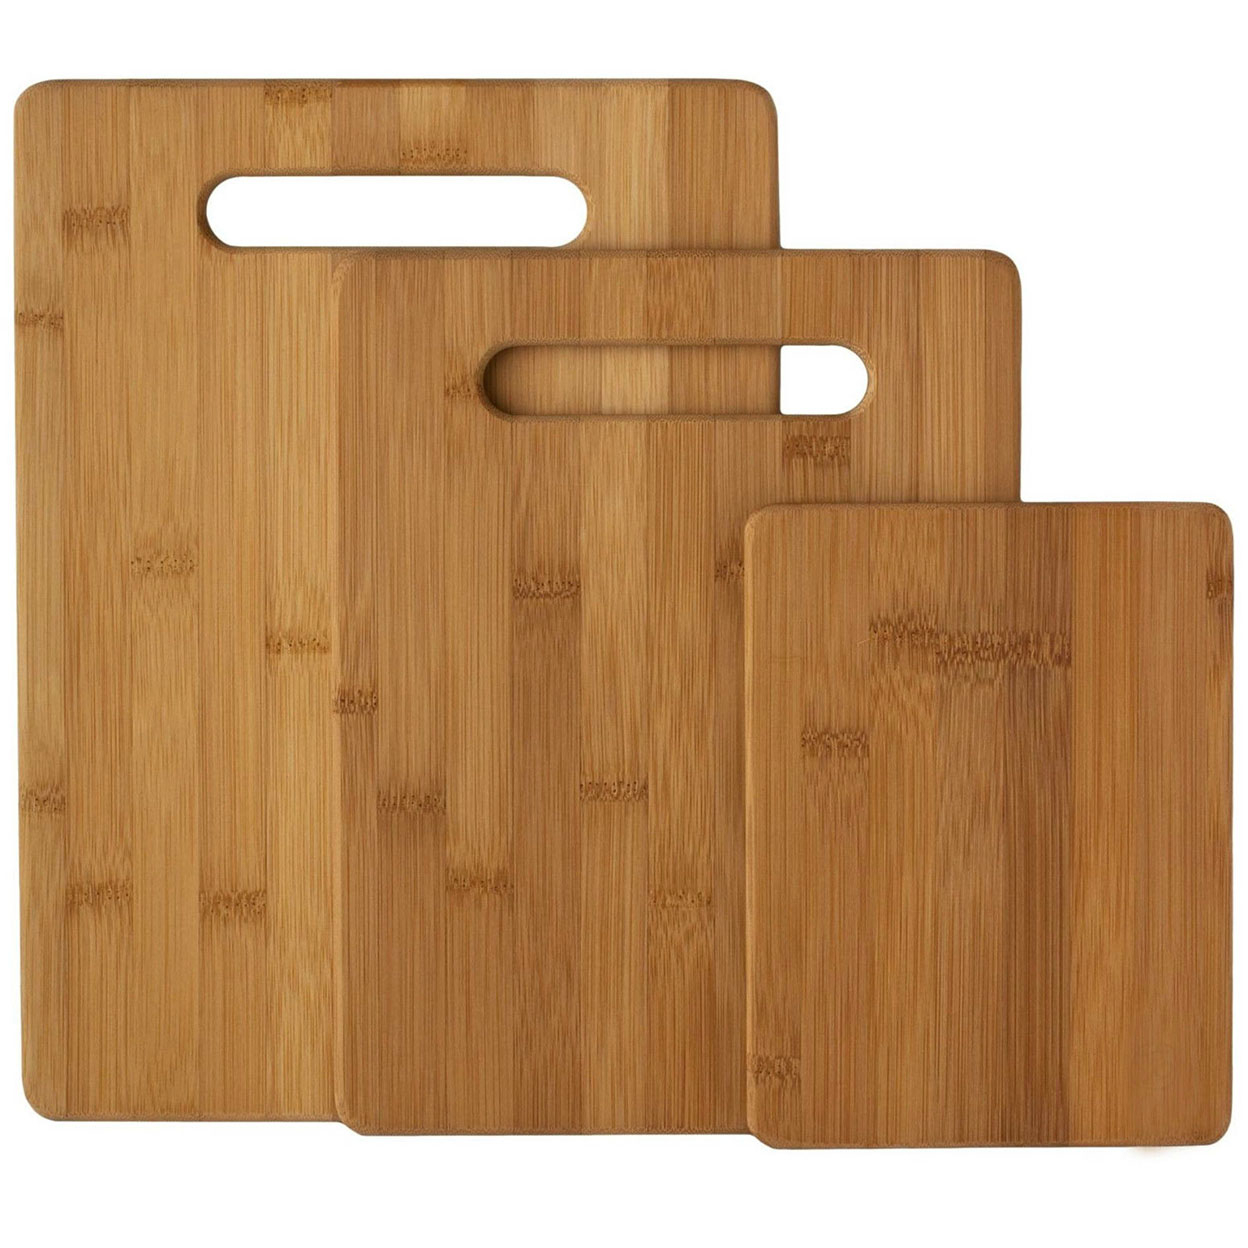 Bamboo Cutting Board 3-Piece Set of 100% Natural Bamboo Cutting Boards By Bambusi 59b9aaa12a00e46d8e71d6e6